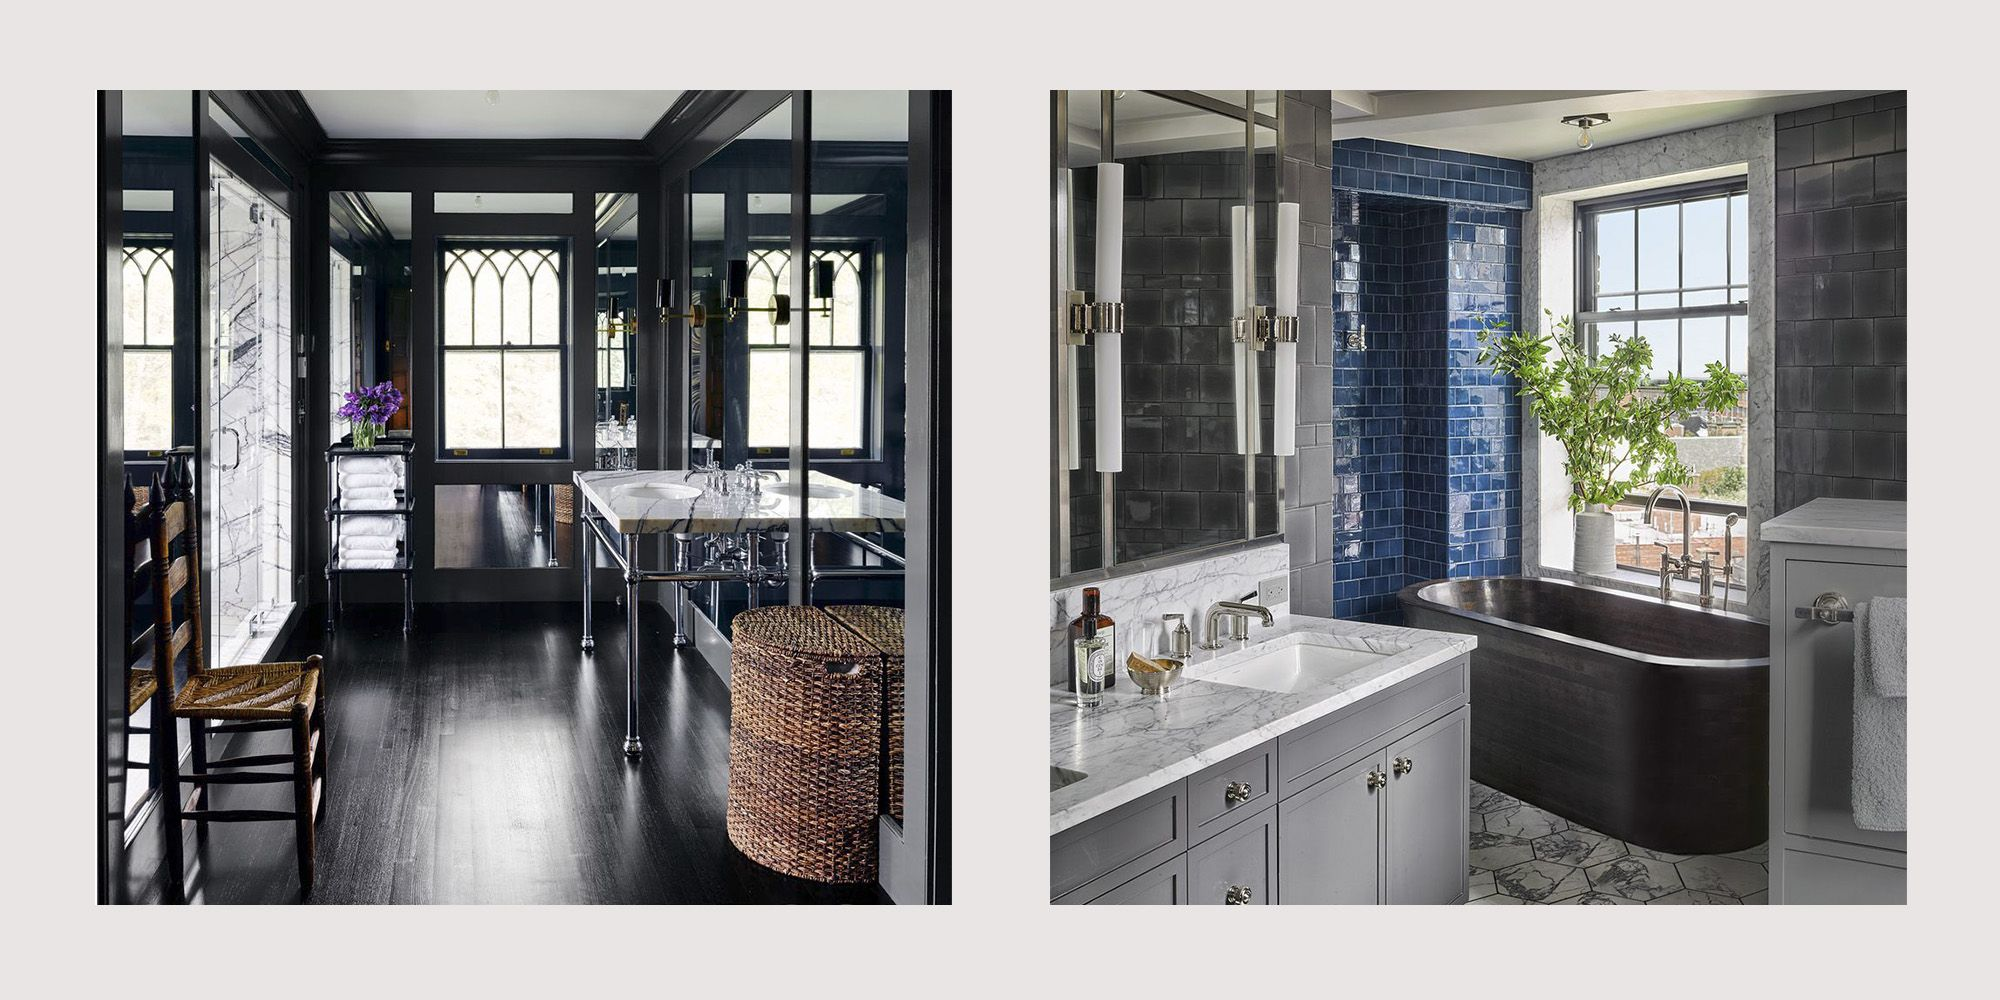 30 Master Bathroom Ideas You're Sure to Fall in Love With